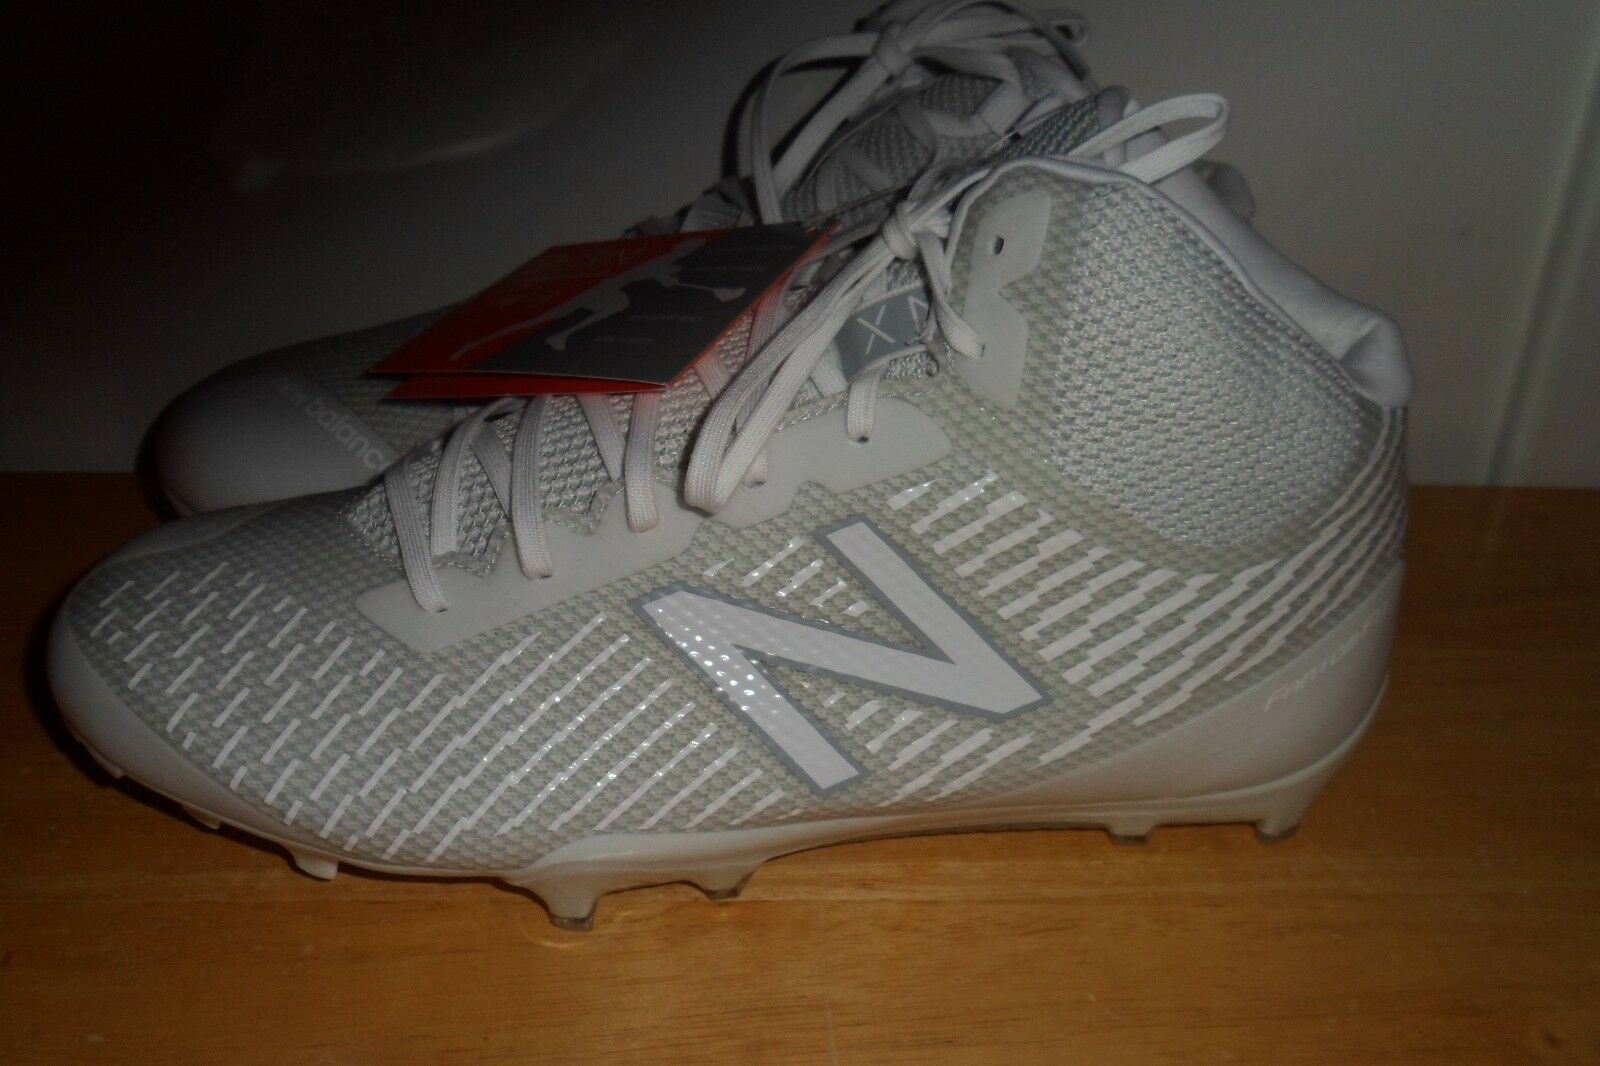 99.99 NWT 2017 NEW BALANCE Burn X Mid-Cut lacrosse BURNXMWT CLEATS MEN 6.5 D